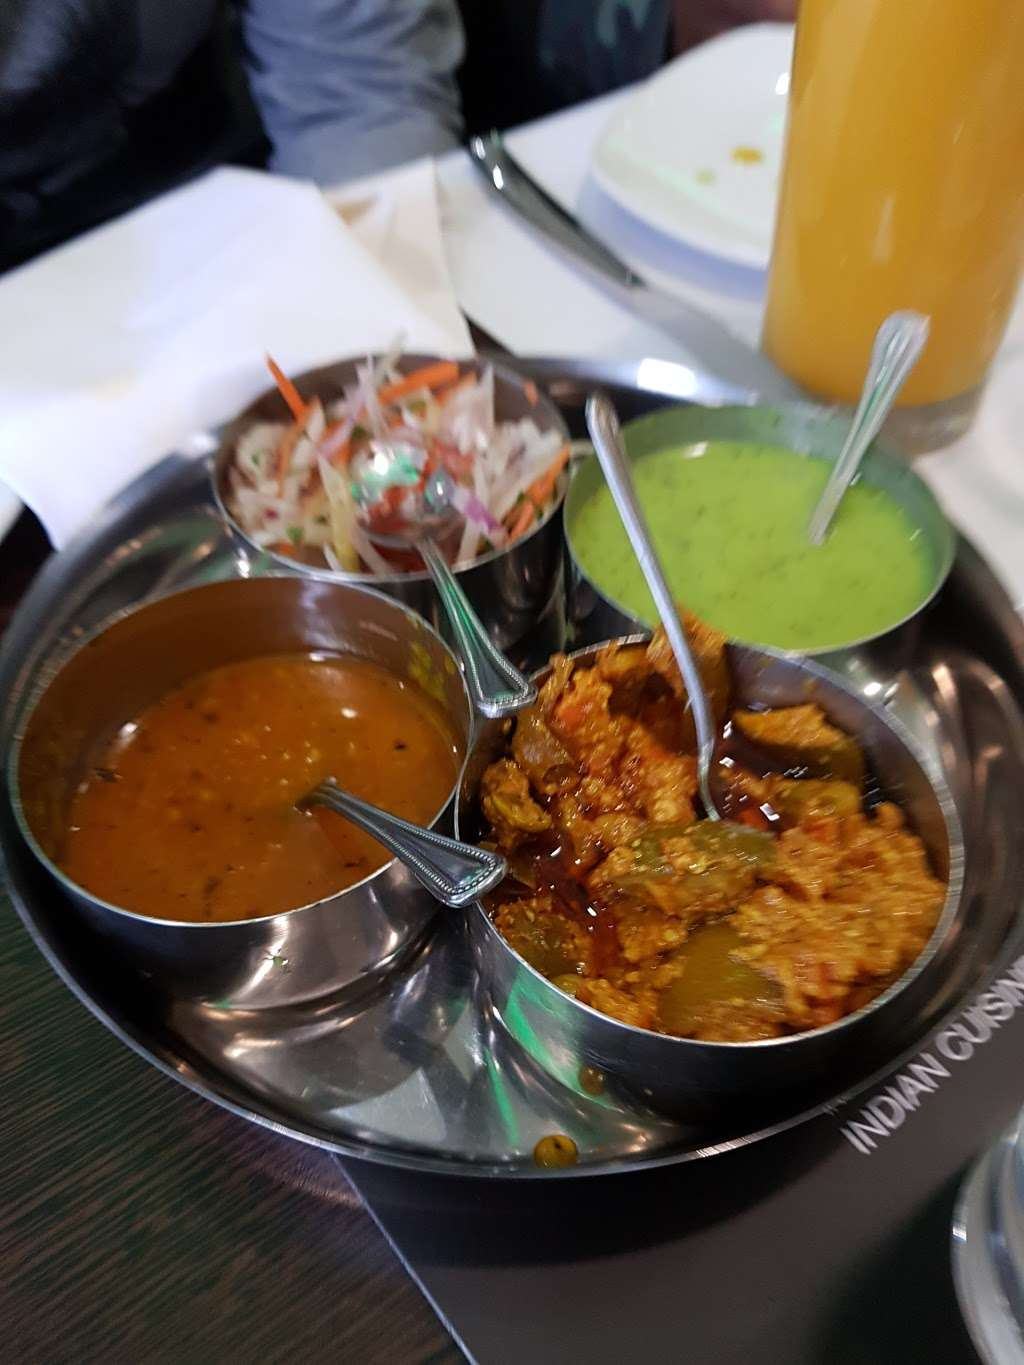 Indian Paradise - restaurant  | Photo 4 of 8 | Address: 576 Wickham Rd, Croydon CR0 8DN, UK | Phone: 020 8777 0844